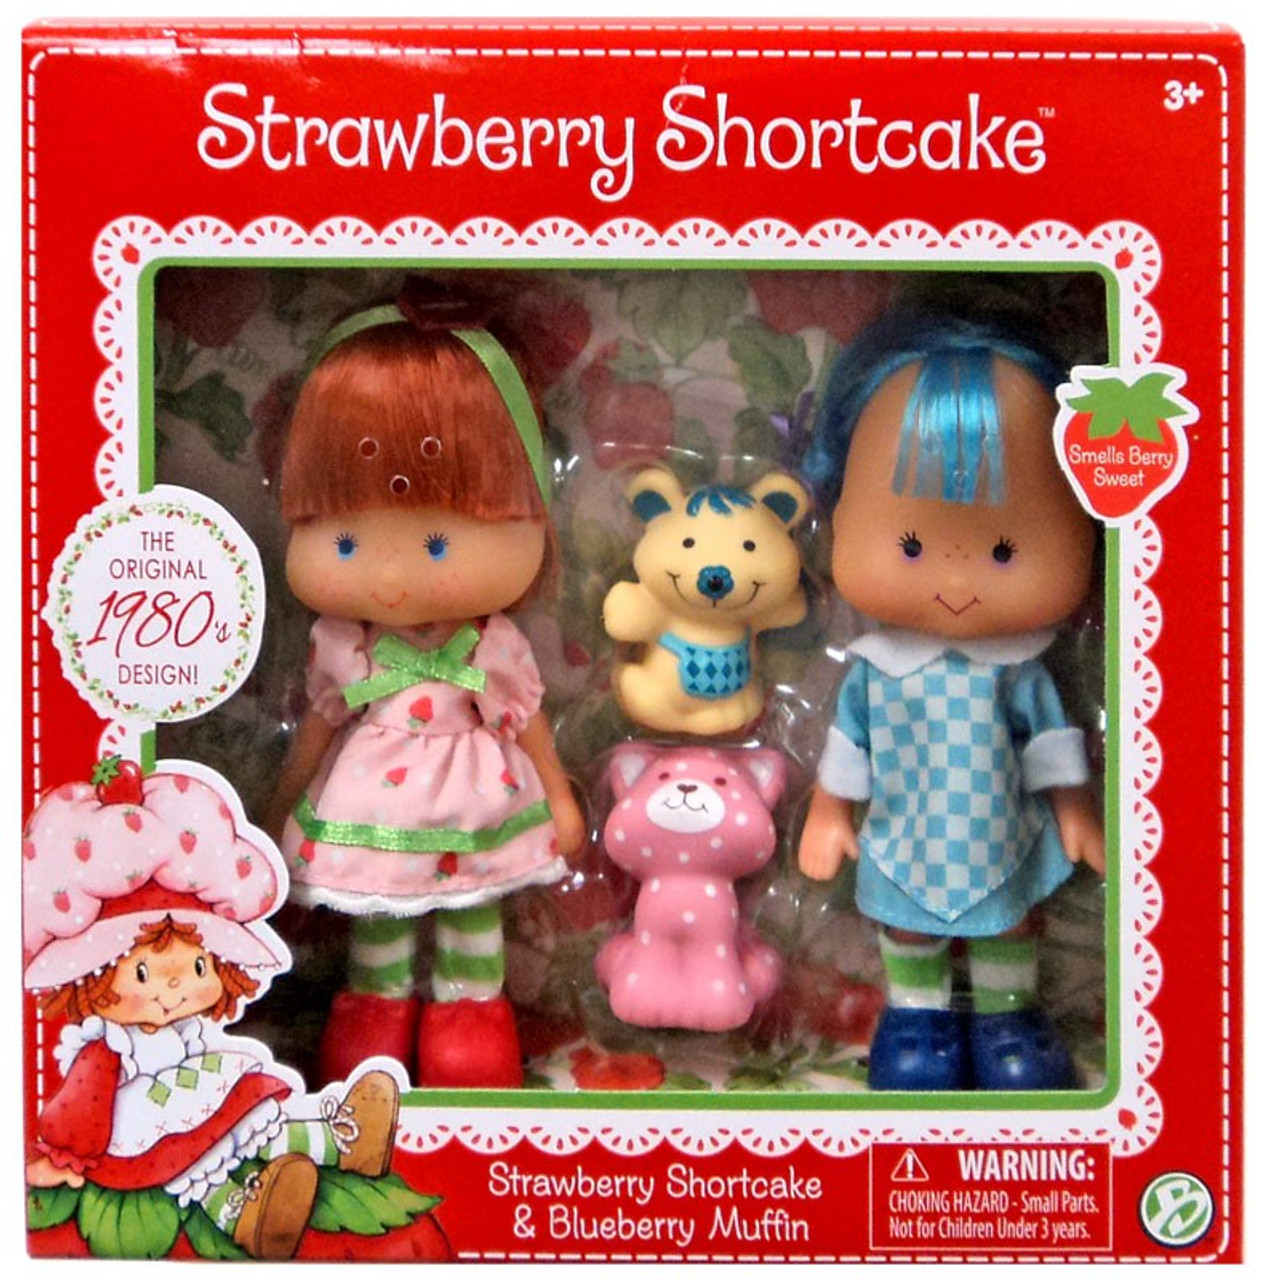 5b3a2368245 Strawberry Shortcake Strawberry Shortcake Blueberry Muffin 5.5 Classic Doll  2-Pack Bridge Direct - ToyWiz